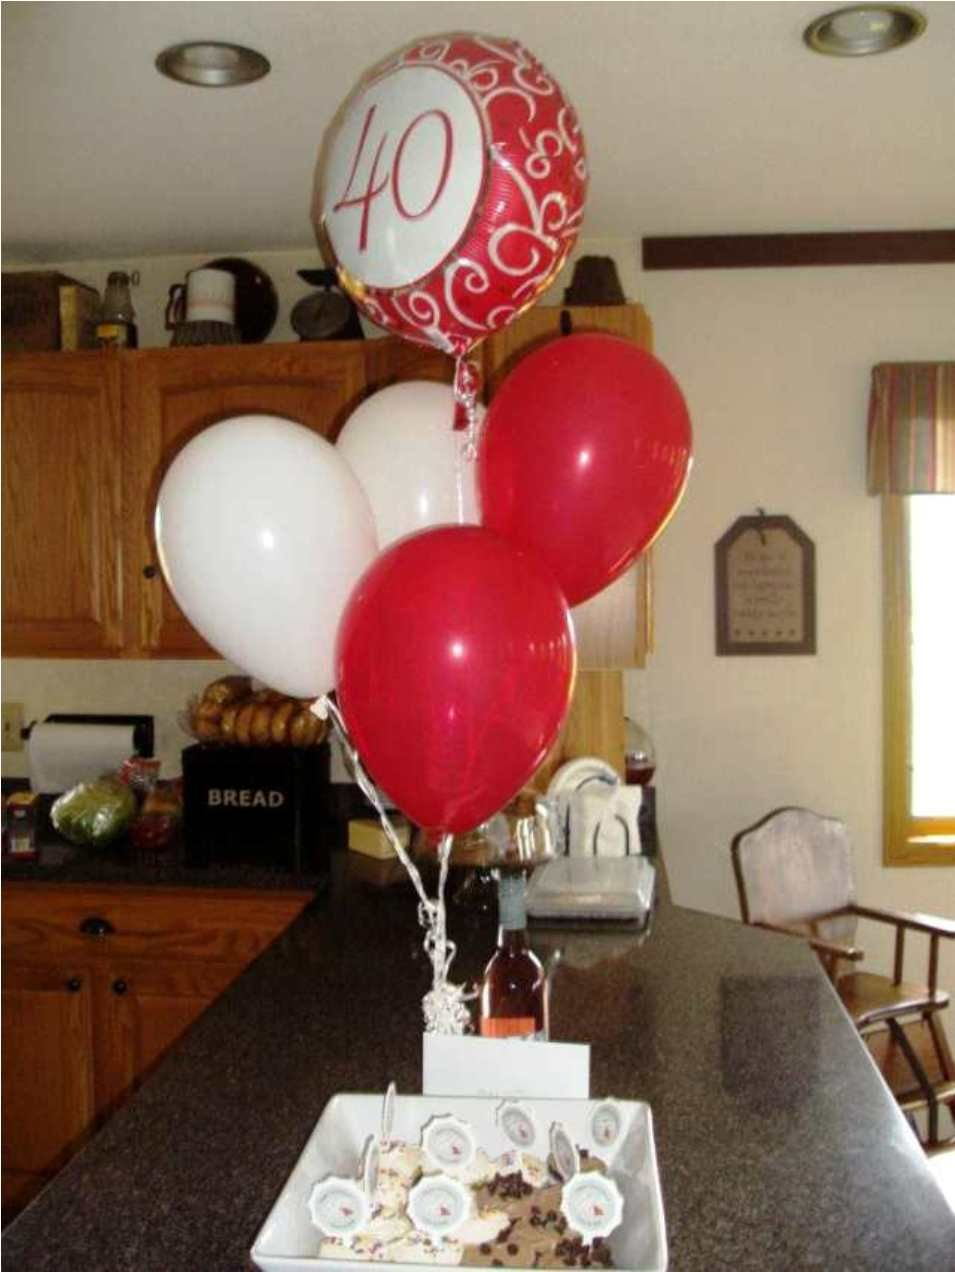 Room decoration ideas for anniversary - 40th Birthday Centerpieces Homemade Decorations Ideas Room Design Anniversary 40th Birthday Homemade